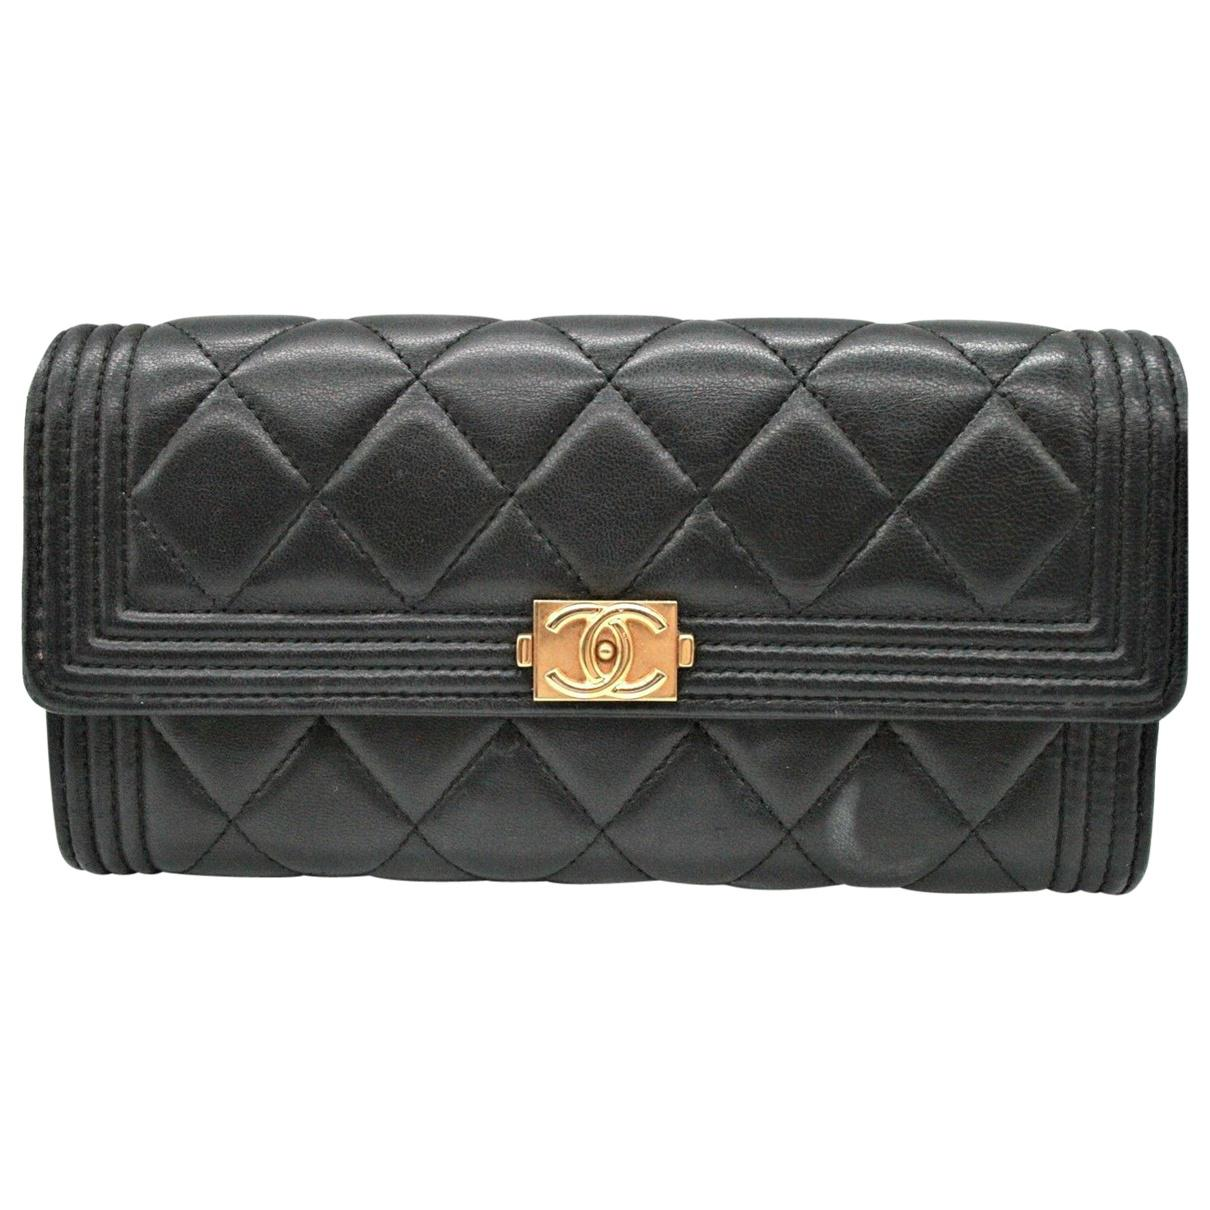 621f45641e0a Chanel. Women's Boy Black Leather Clutch Bag. $1,800 From Vestiaire  Collective